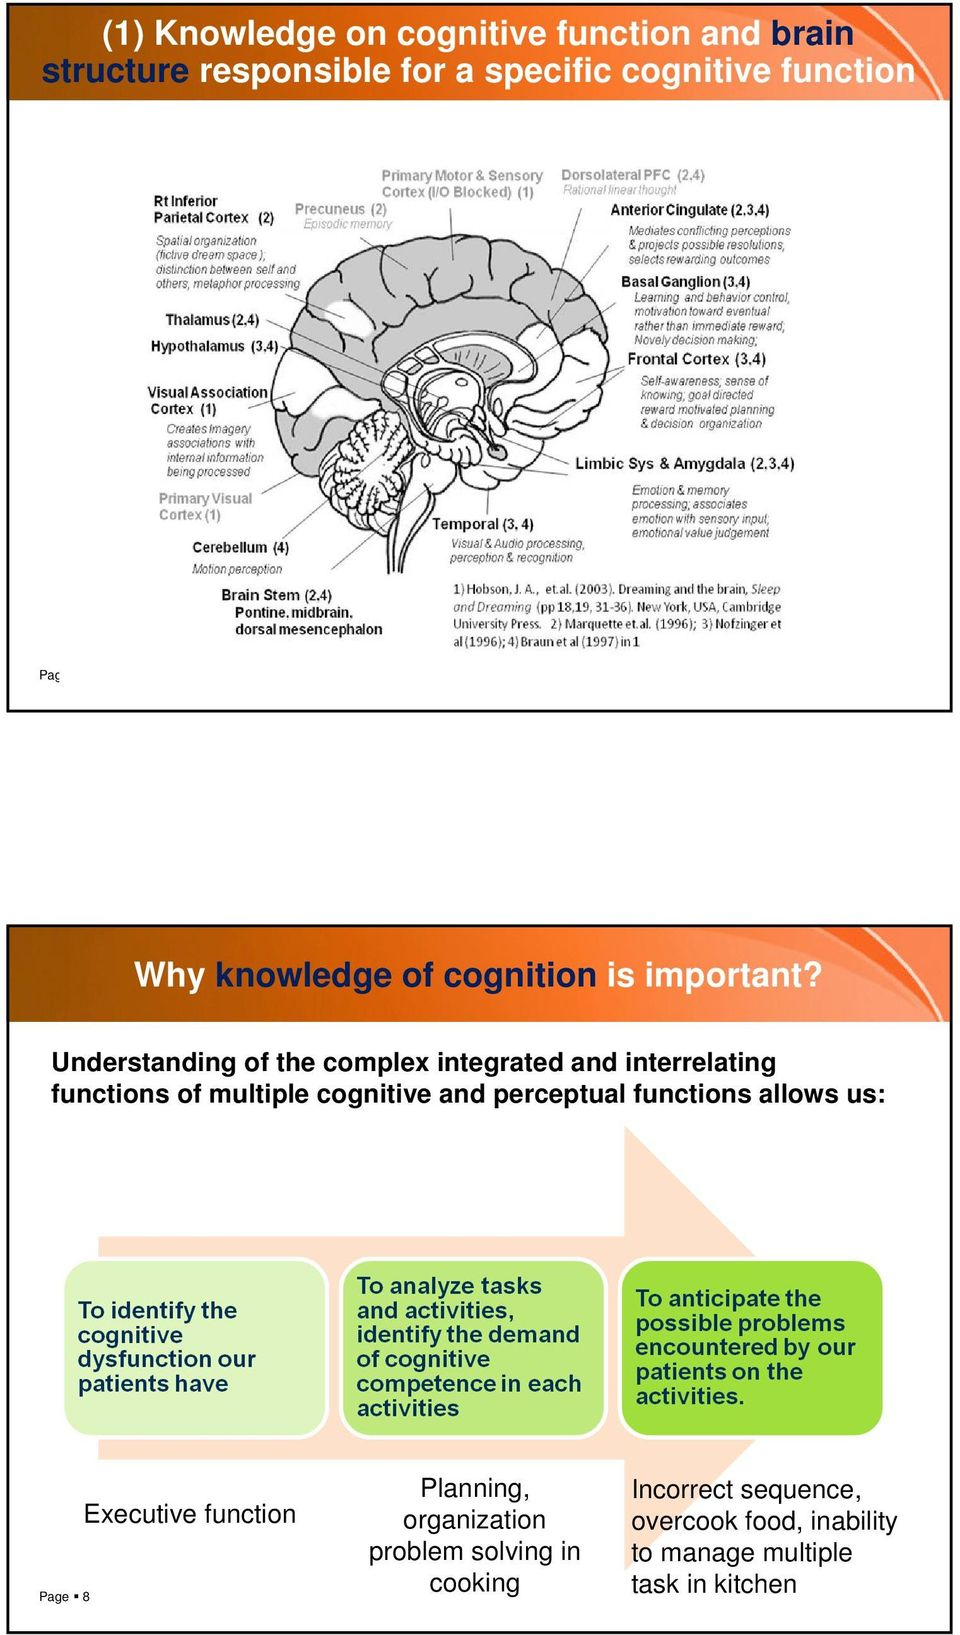 Understanding of the complex integrated and interrelating functions of multiple cognitive and perceptual